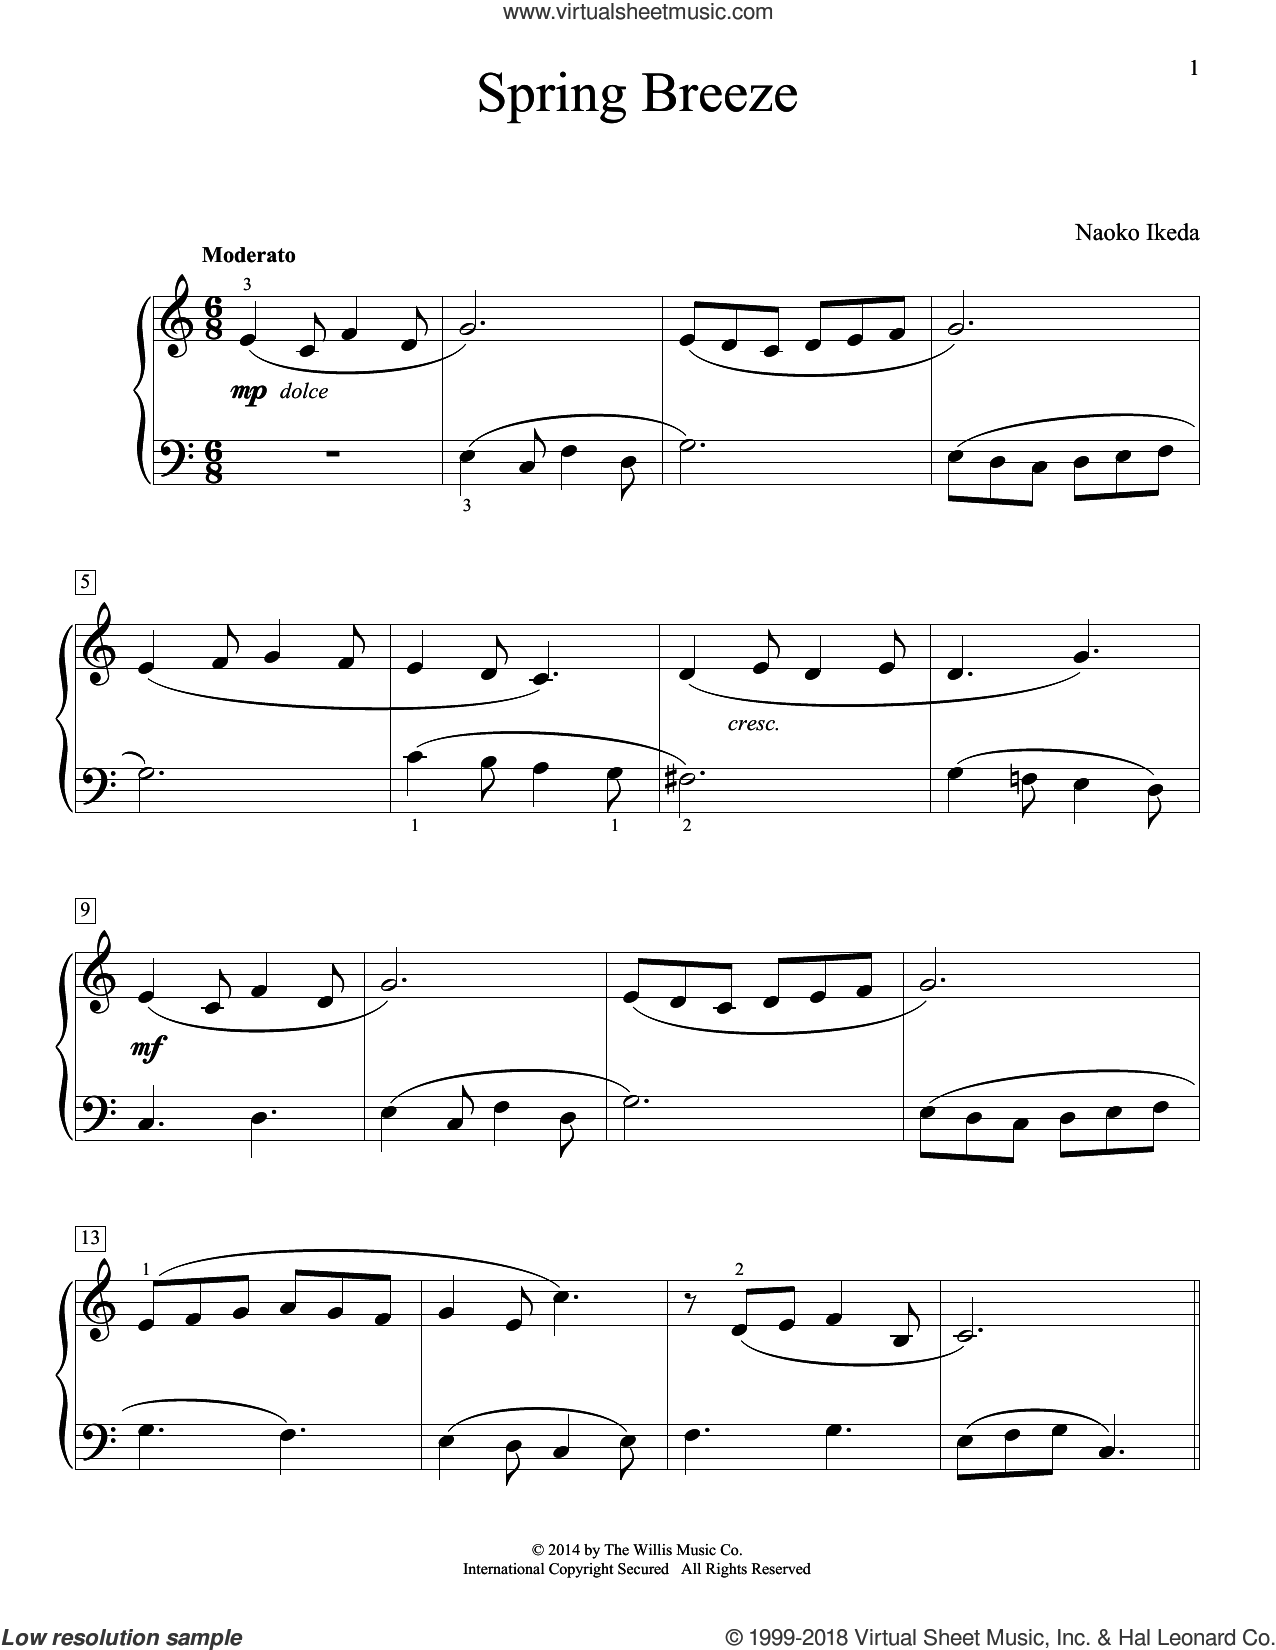 Spring Breeze sheet music for piano solo (elementary) by Naoko Ikeda